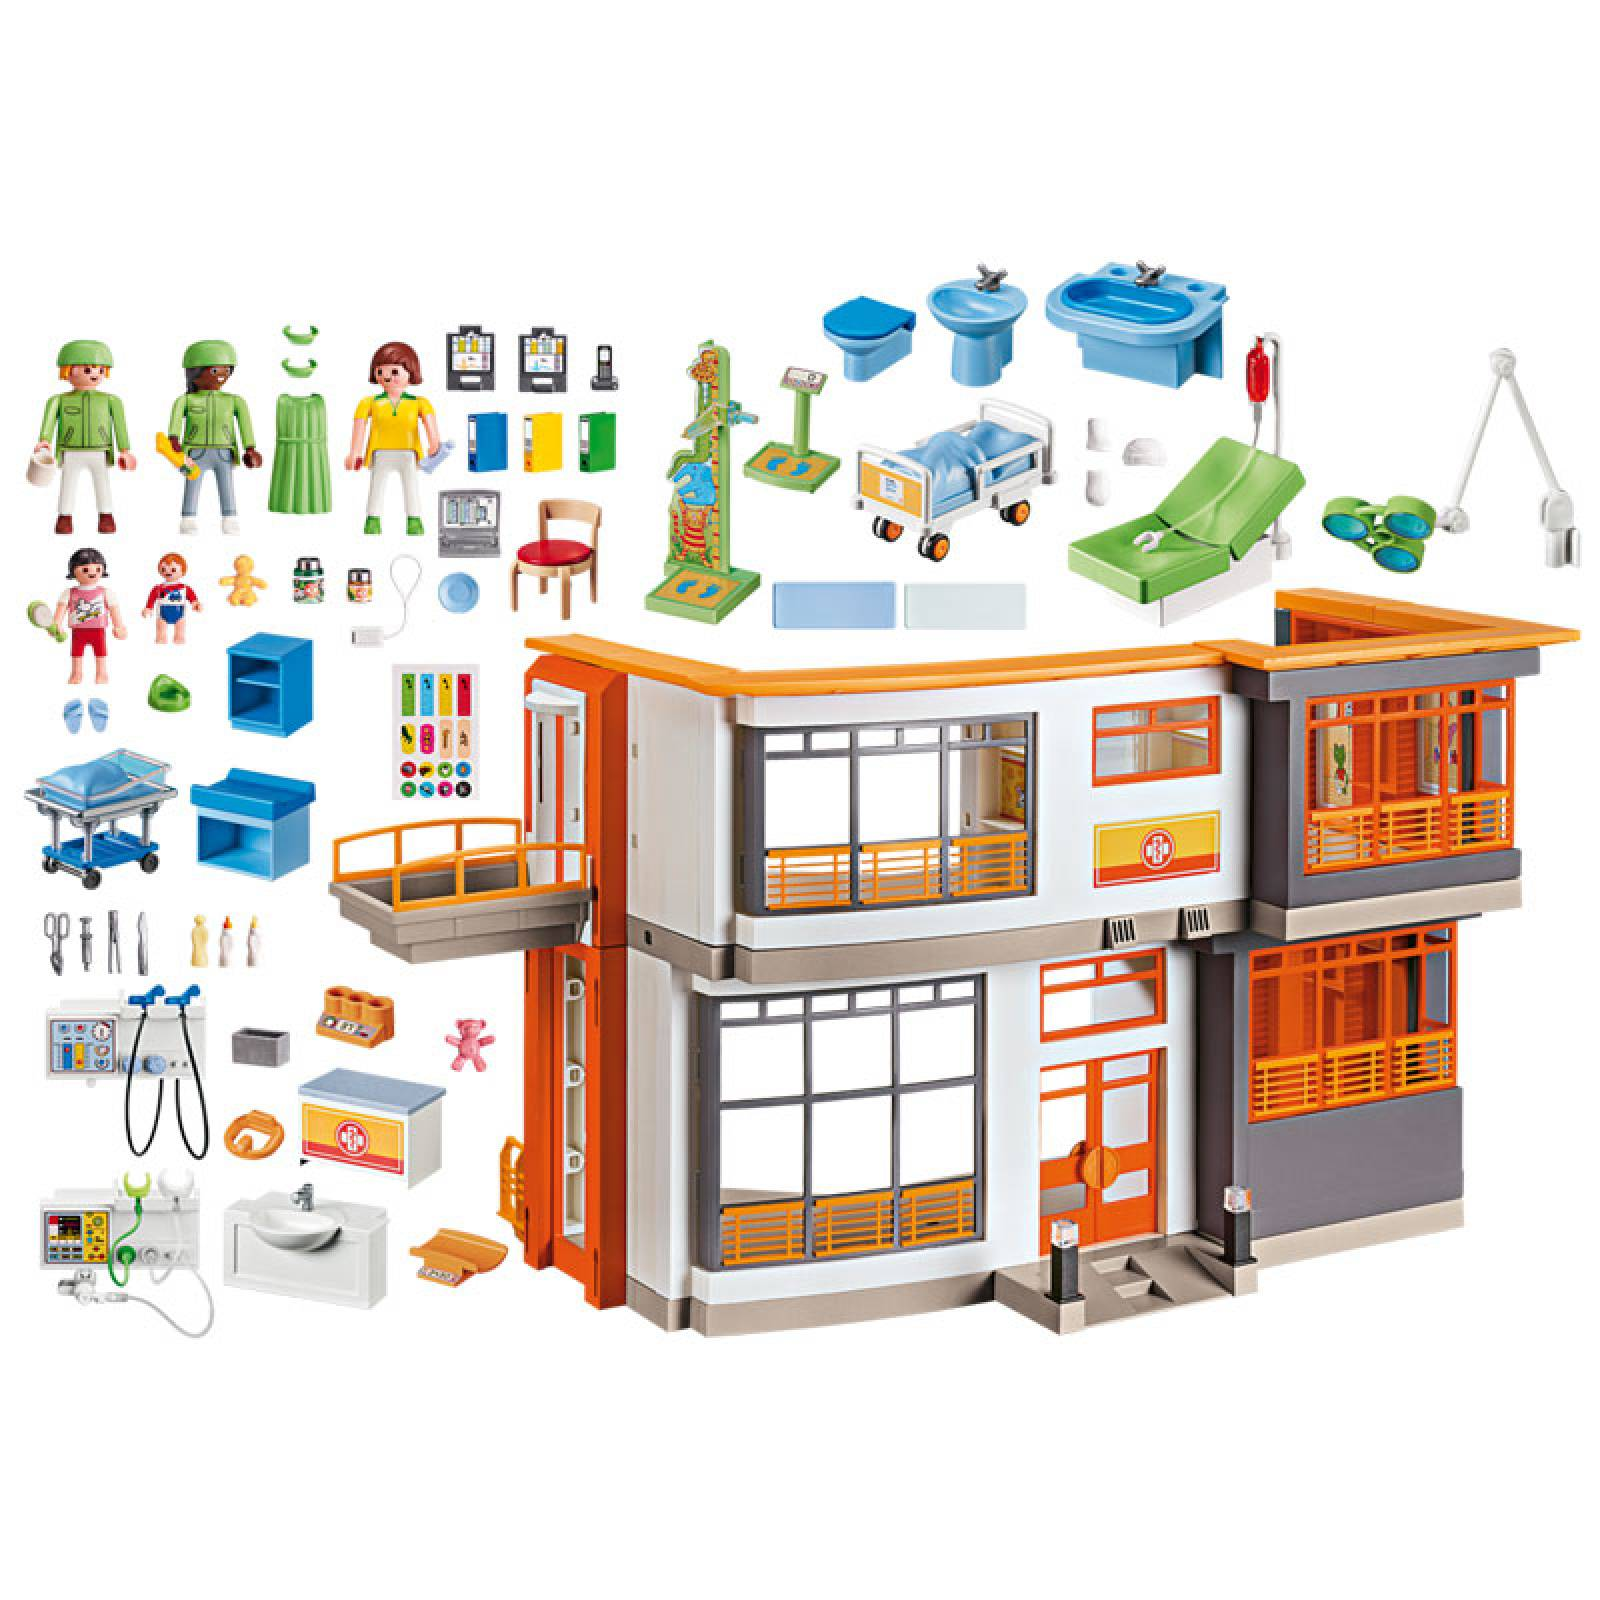 Furnished Children's Hospital City Life Playmobil 6657 4-10yrs thumbnails